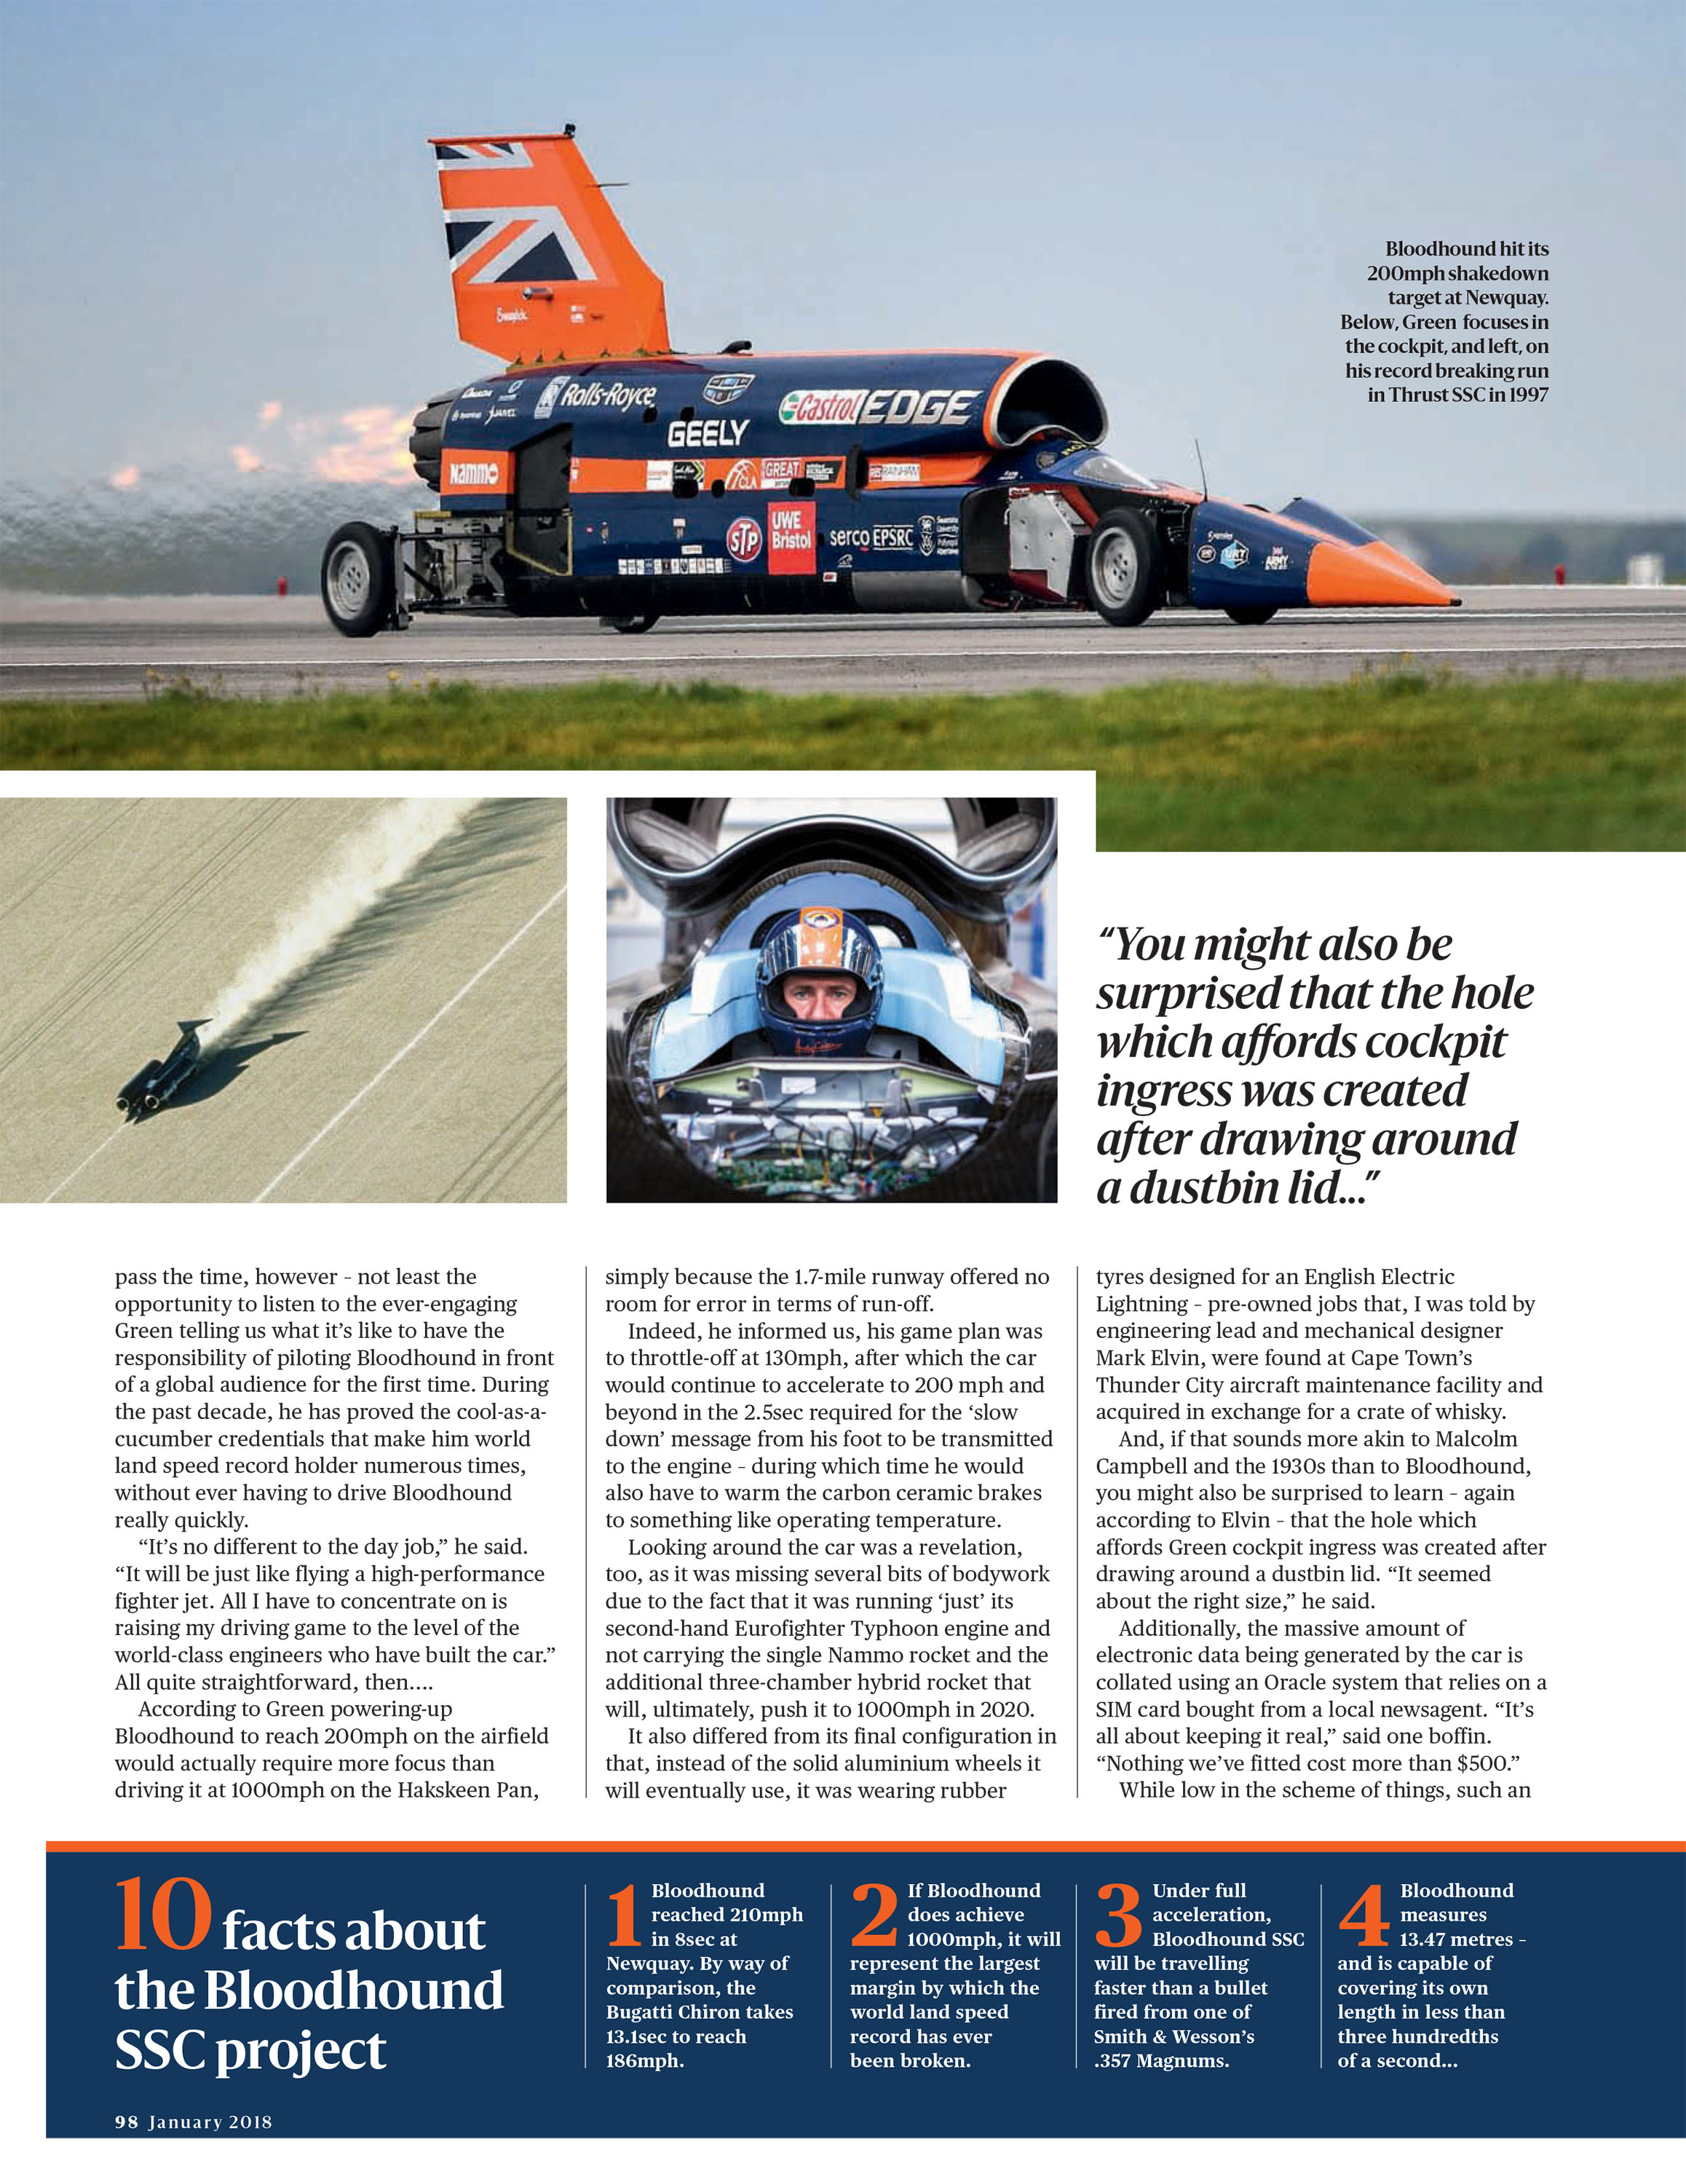 Ten facts about the Bloodhound SSC project image